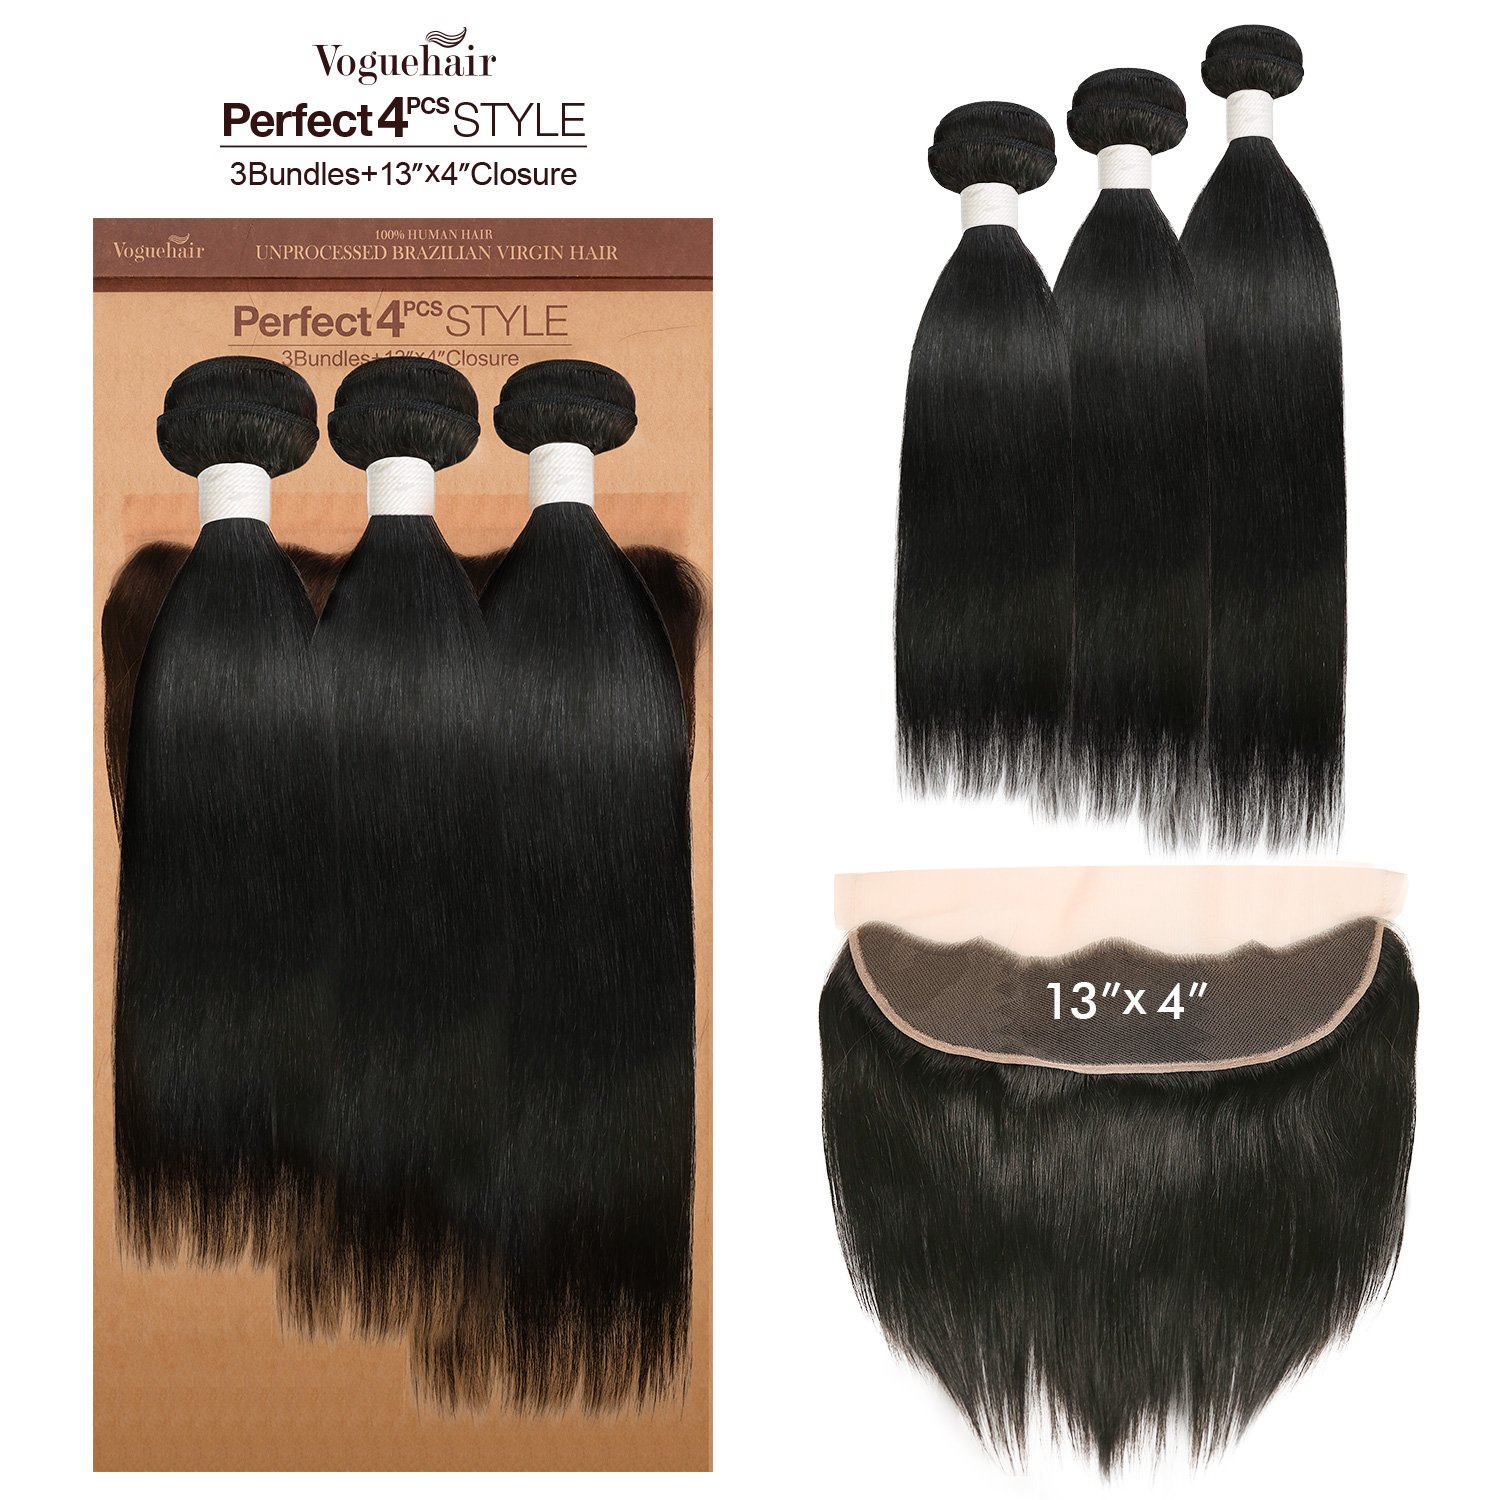 Vogue Hair 100% Virgin Human Hair Brazilian Weave Perfect 4Pcs Style 6A Natural Straight 3Pcs + 13X4 Closure (NATURAL BLACK) (18''+20''+22'' with 14'')